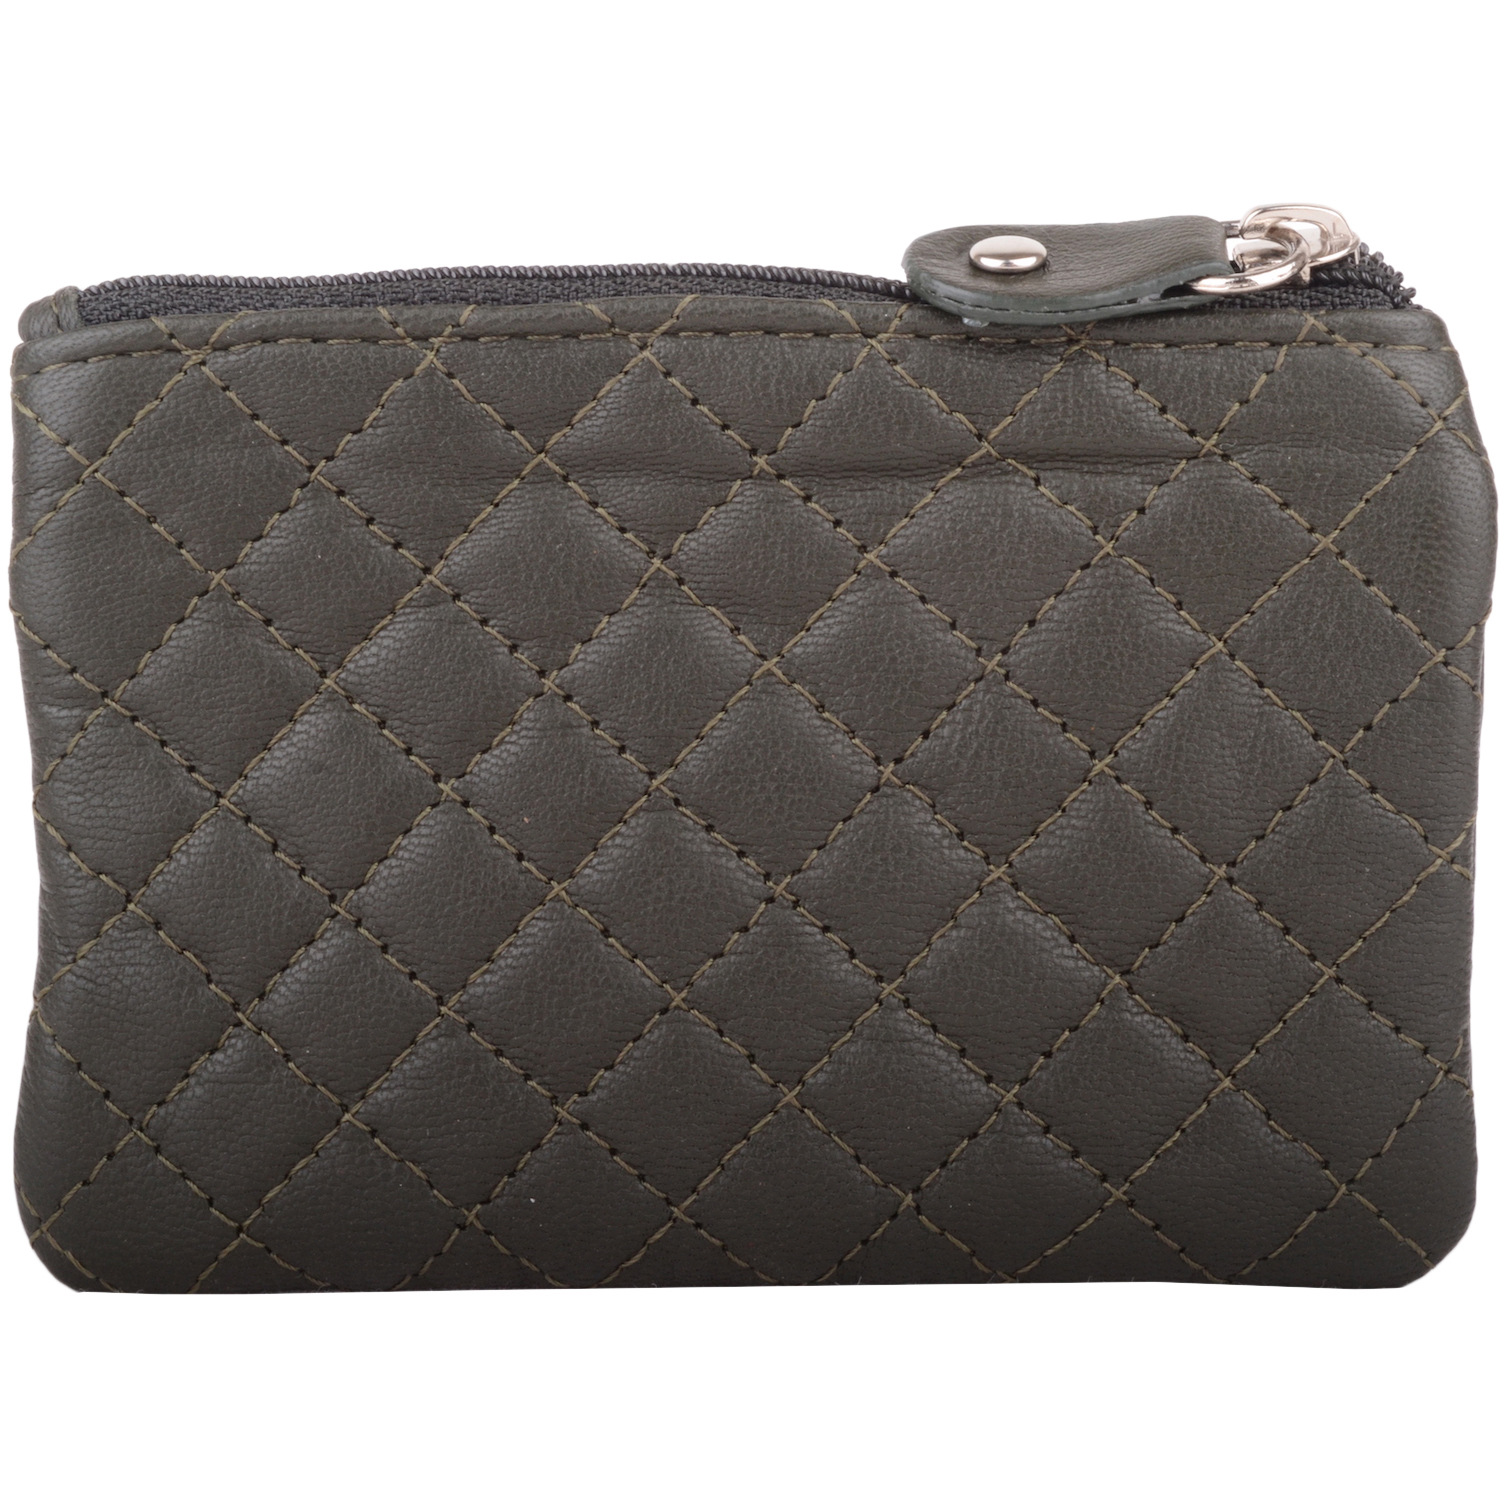 Soft Leather Quilted Detail Coin Purse - Heidi